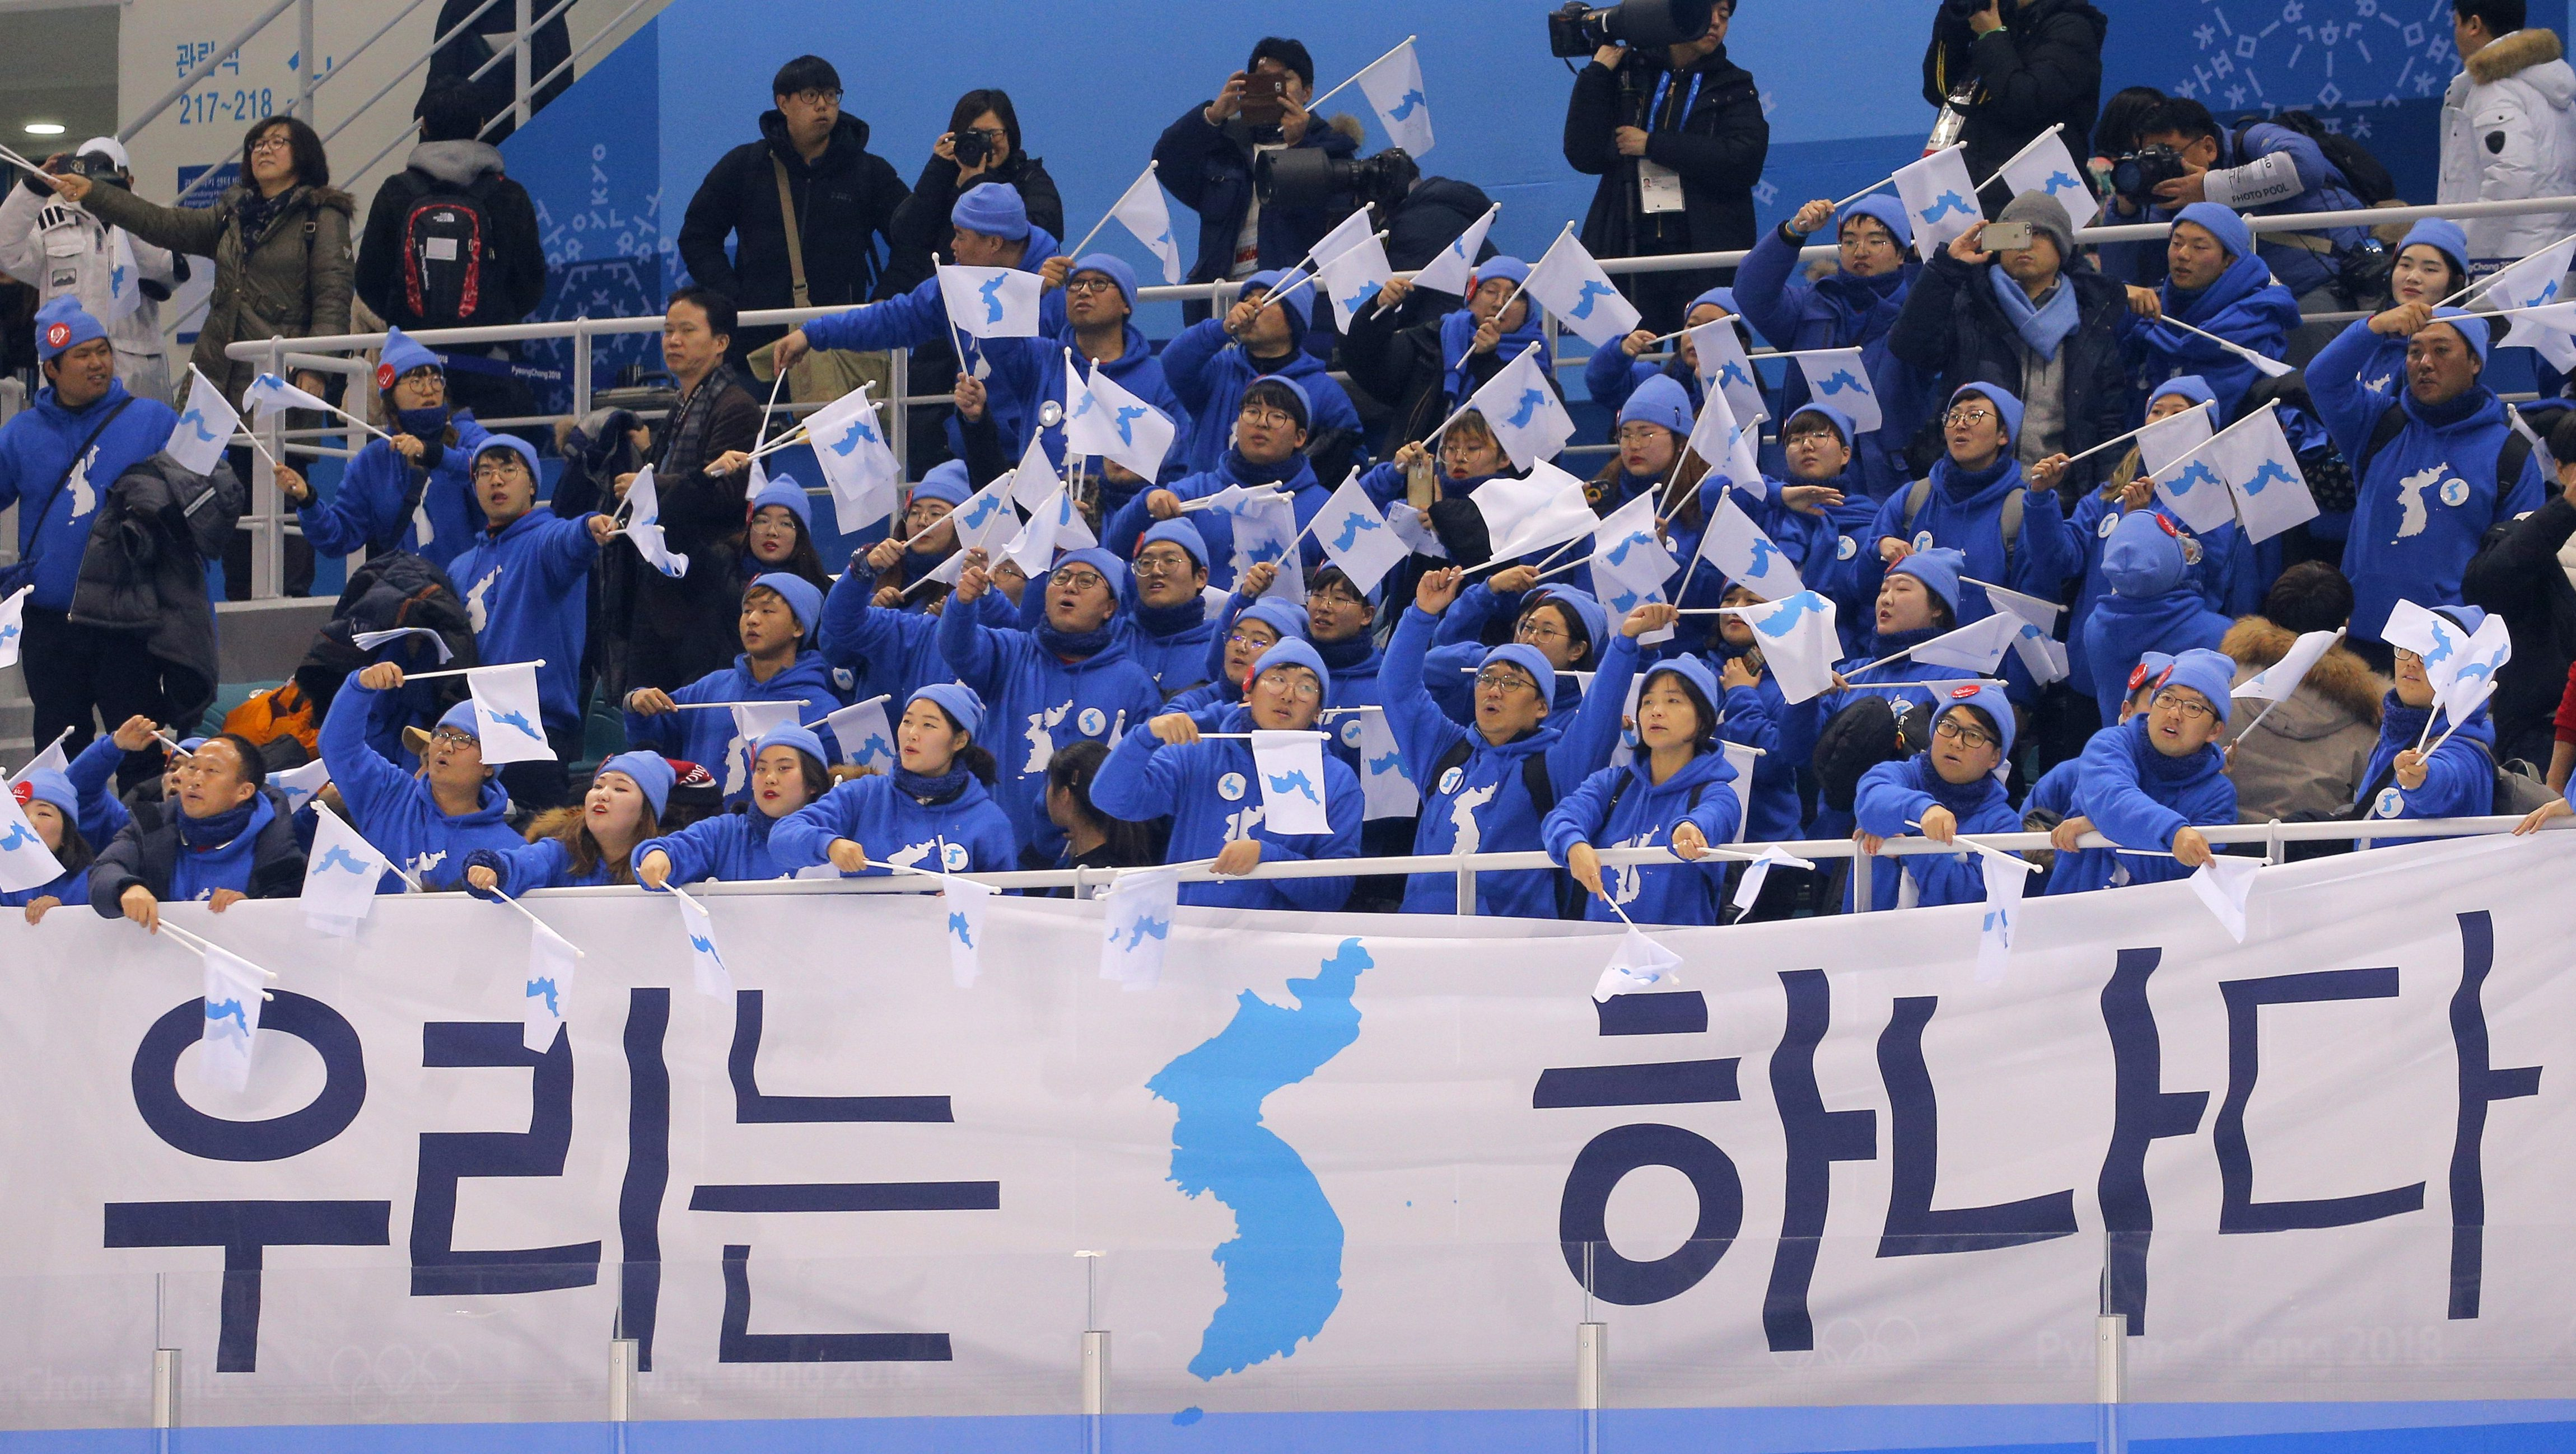 "Ice Hockey – Pyeongchang 2018 Winter Olympics – Women Preliminary Round Match - Sweden v Korea - Kwandong Hockey Centre, Gangneung, South Korea – February 12, 2018 - Fans wave Korea Unification flags behind a banner that reads ""We are one""."